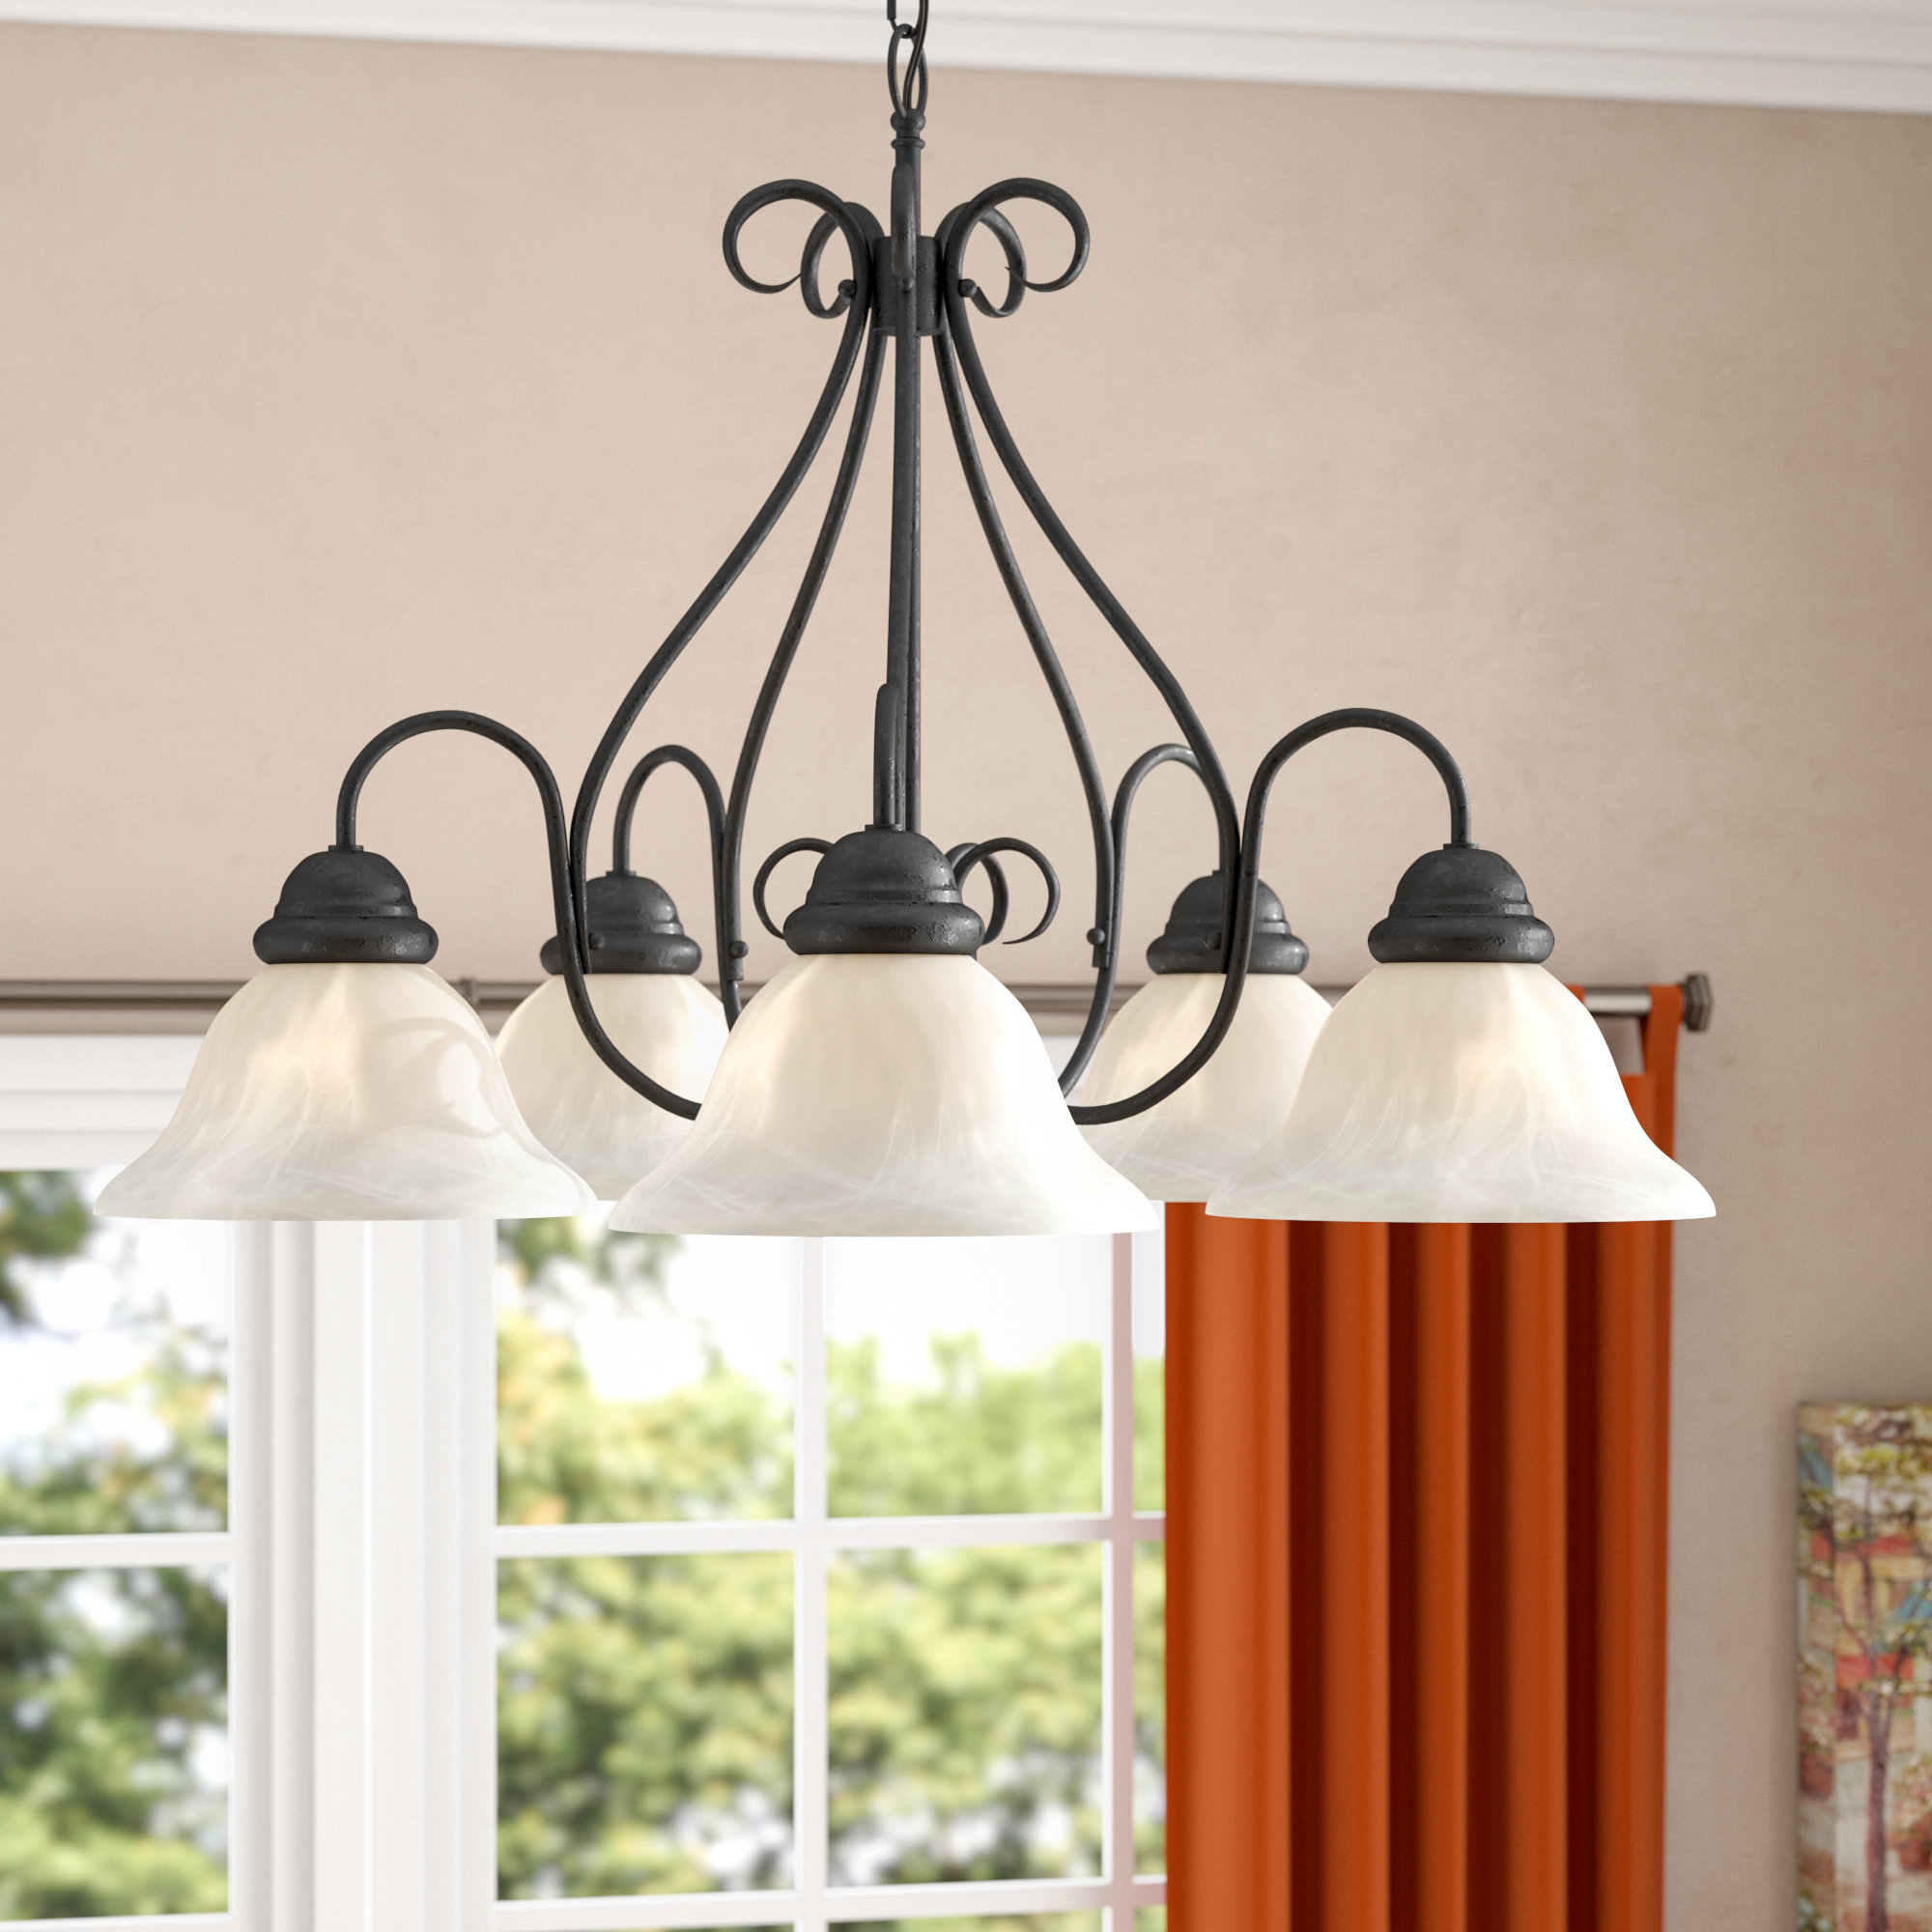 Claycomb 5 Light Shaded Chandelier Intended For Well Liked Hayden 5 Light Shaded Chandeliers (View 1 of 20)